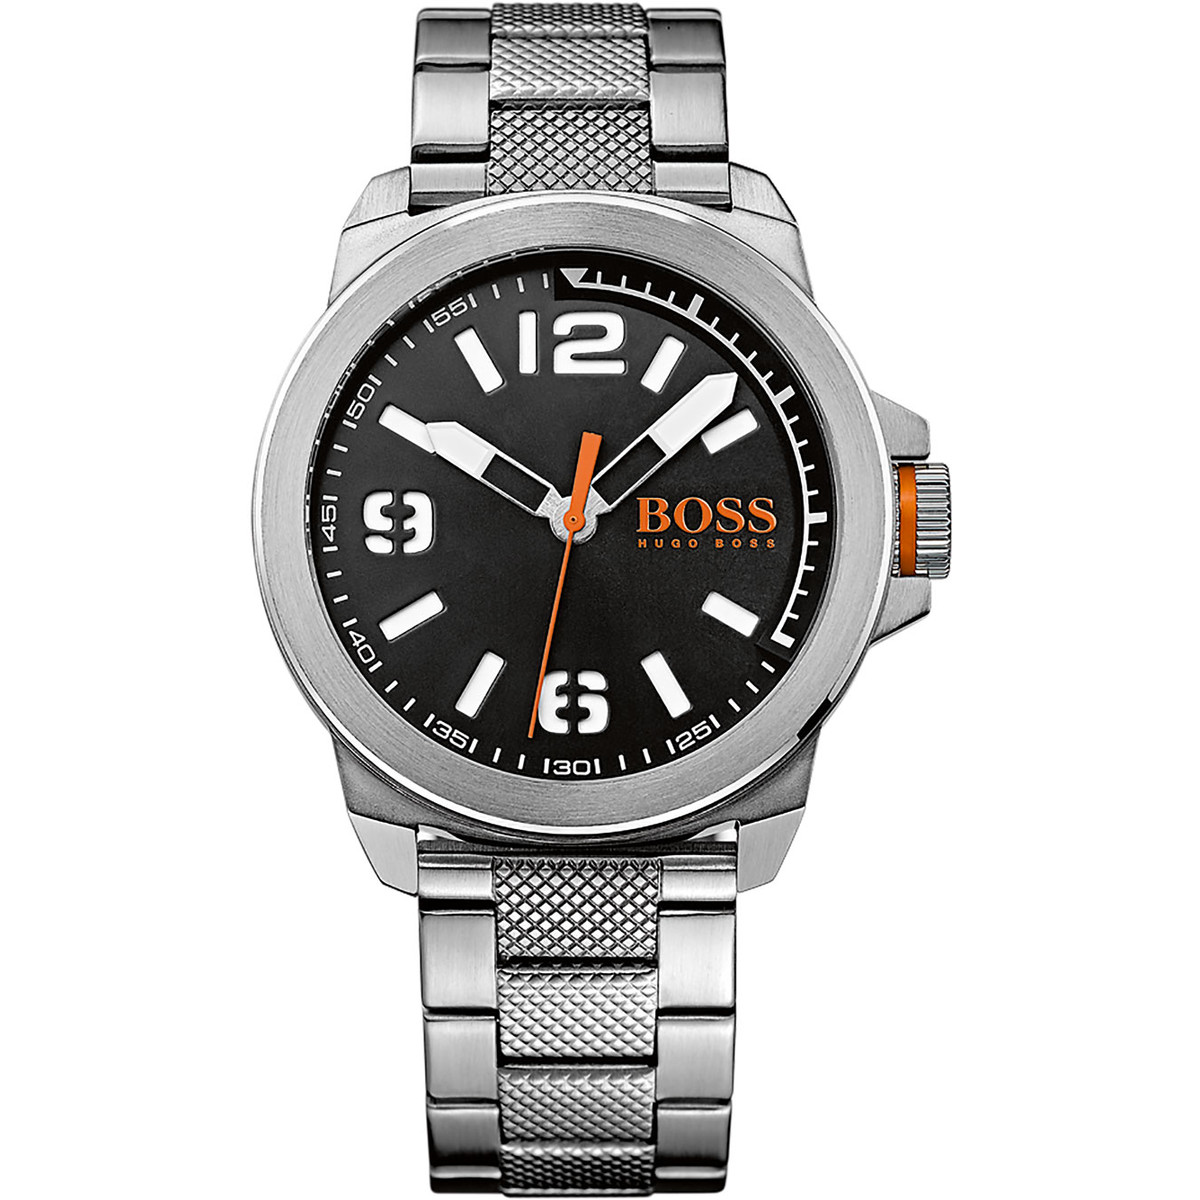 Ceas barbatesc Hugo Boss New York 1513153 original de mana